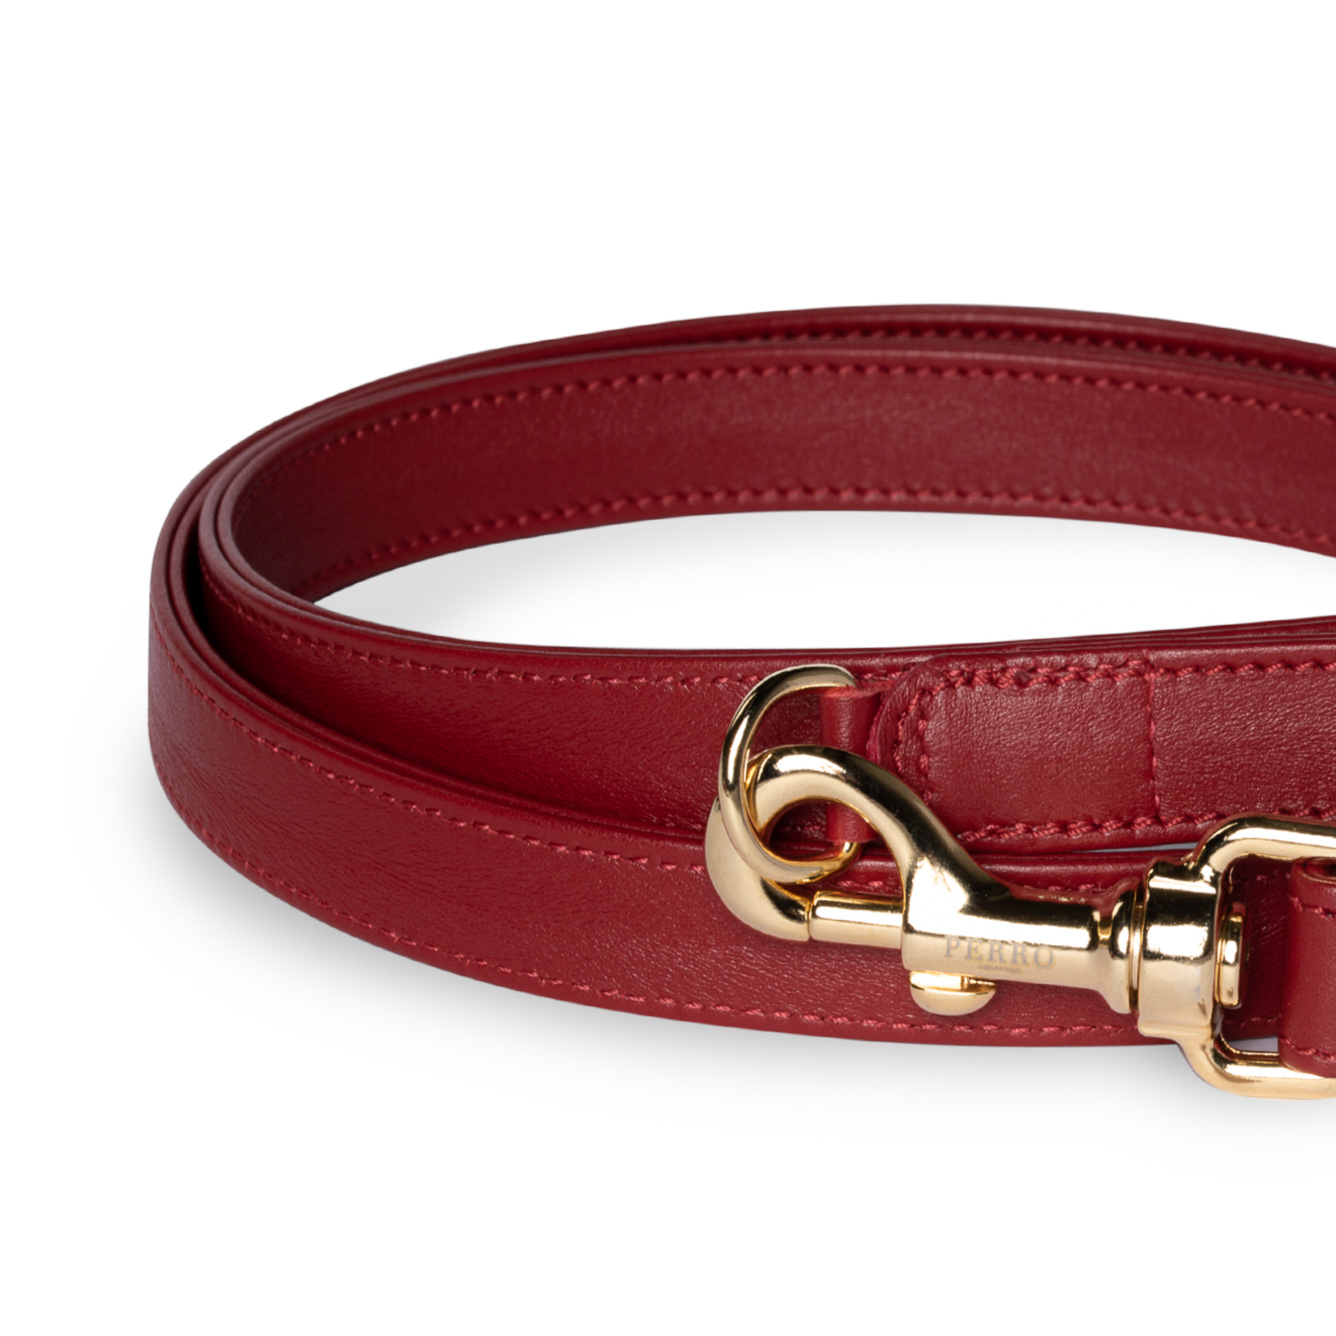 Scarlet red leash close up